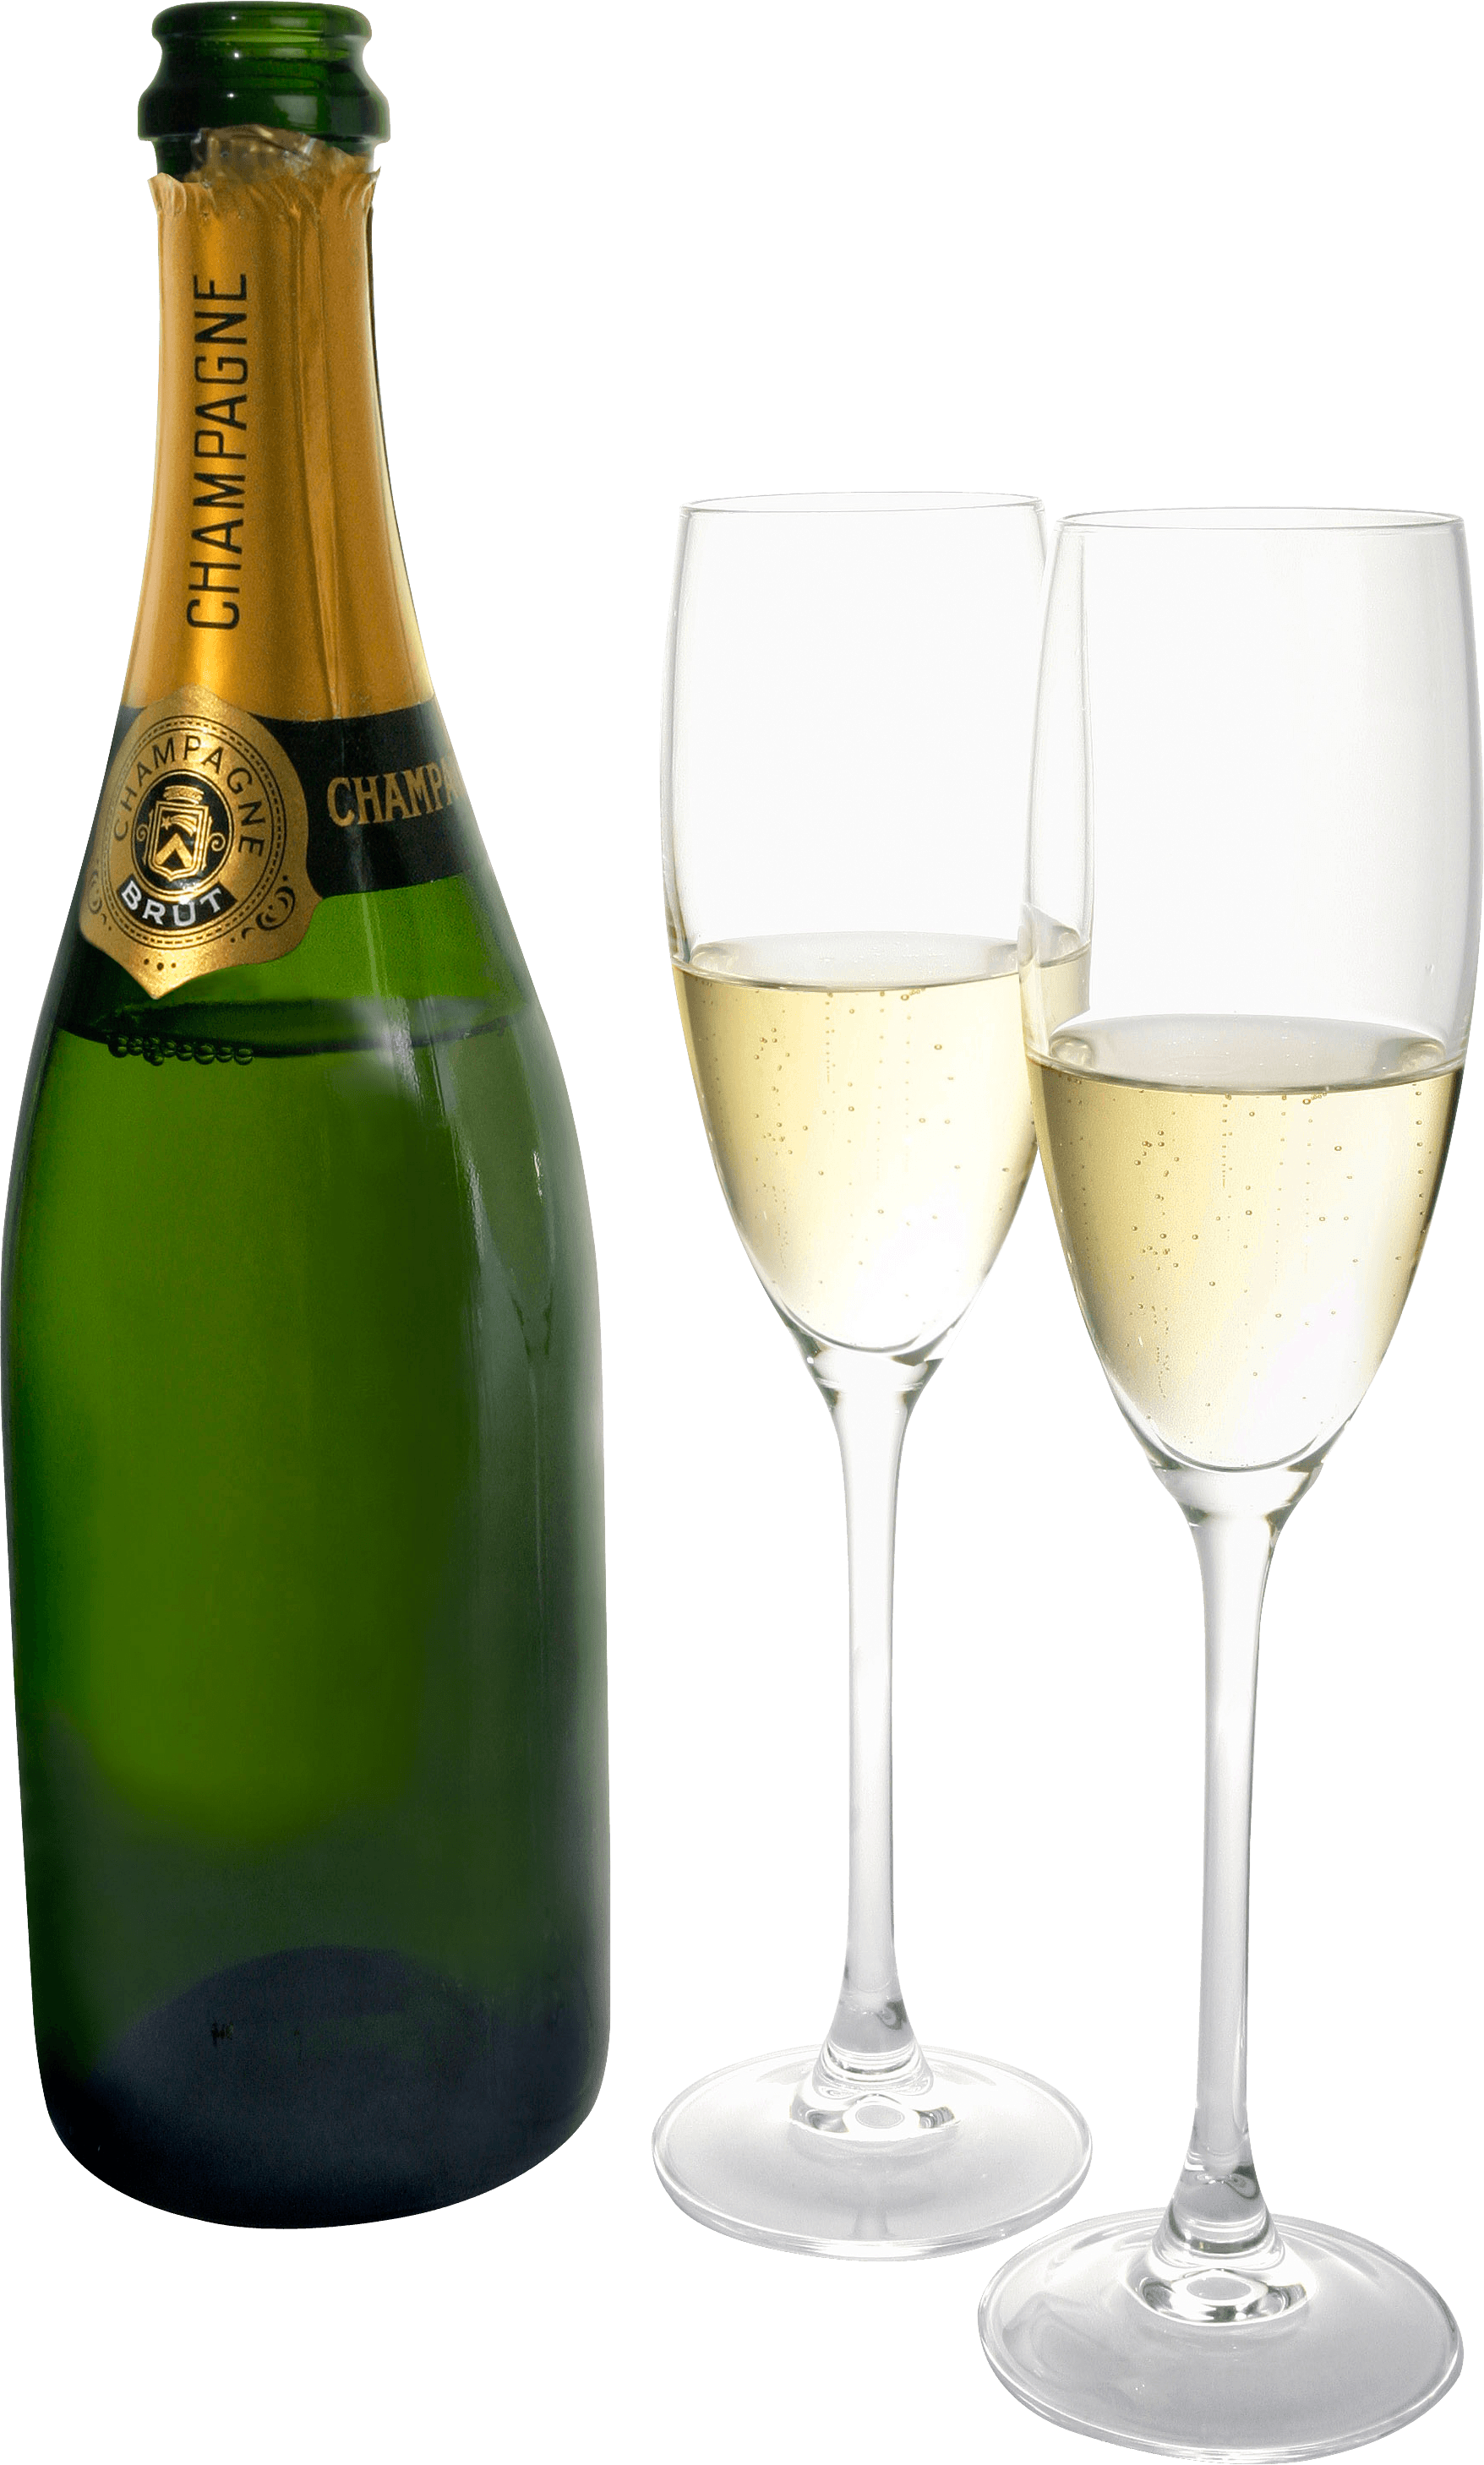 Champagne Two Glasses Bottle transparent PNG.